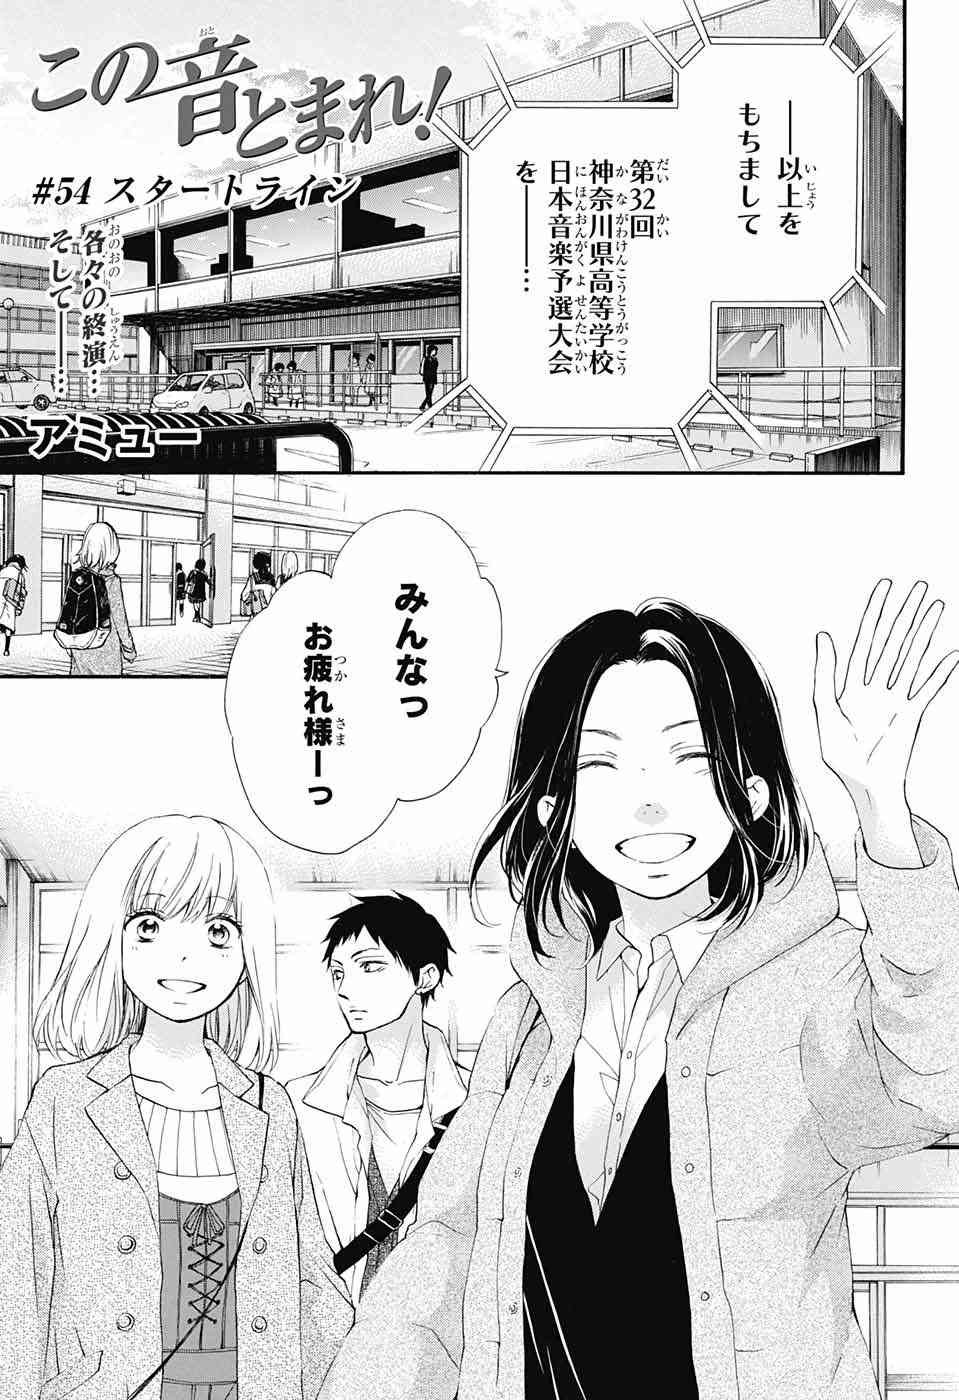 Kono Oto Tomare! - Chapter 54 - Page 1